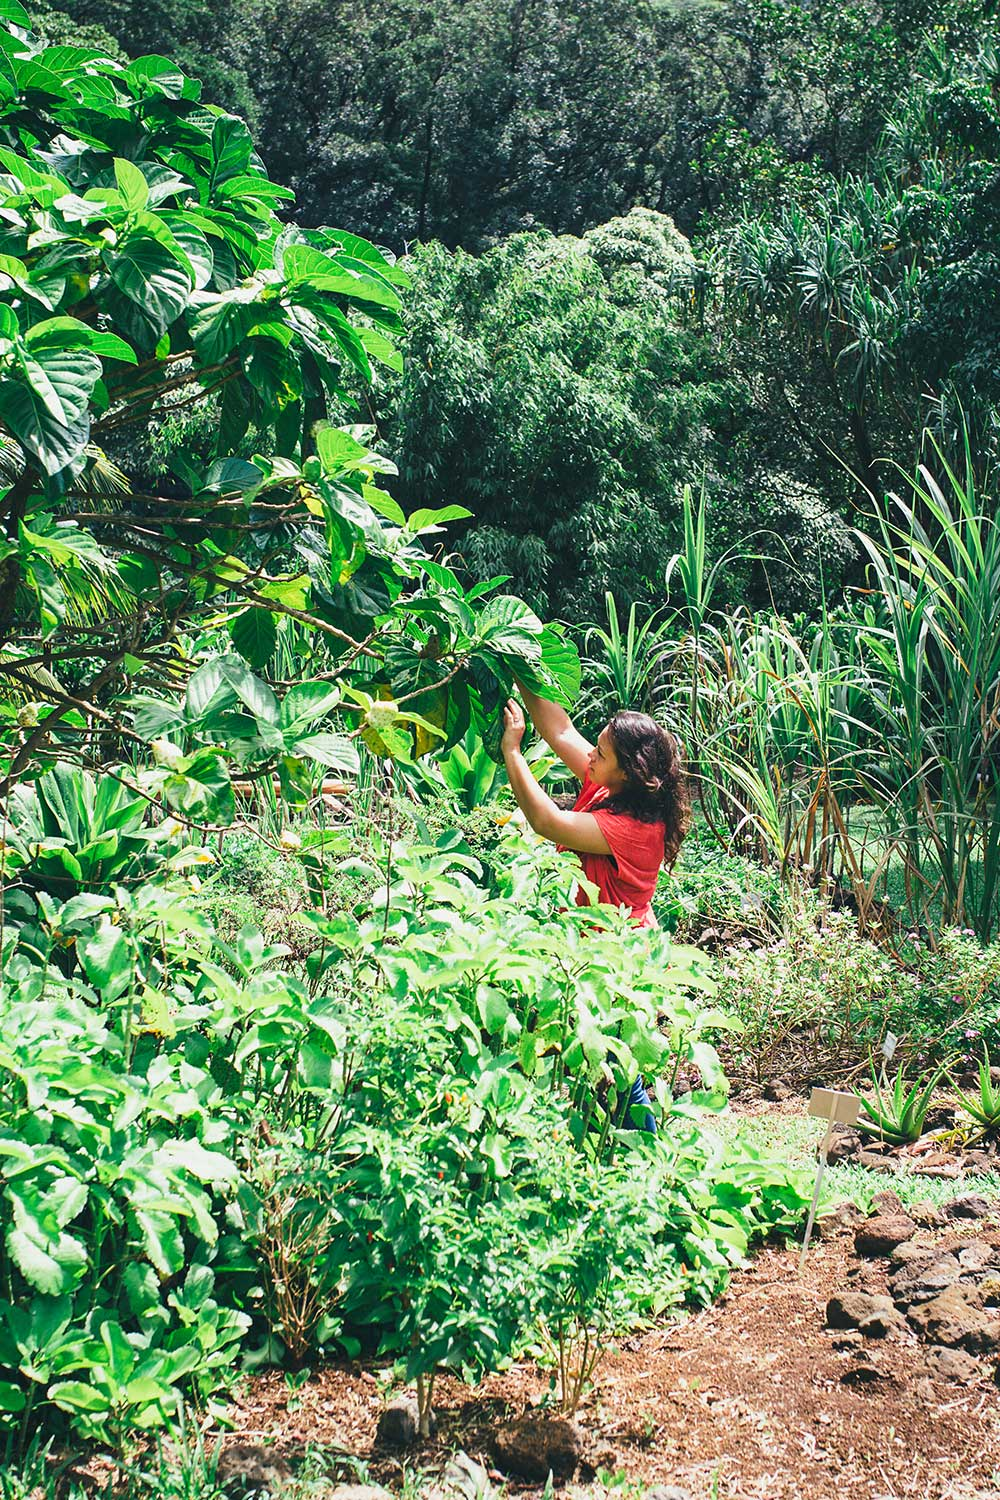 Woman with red shirt picking from a tree